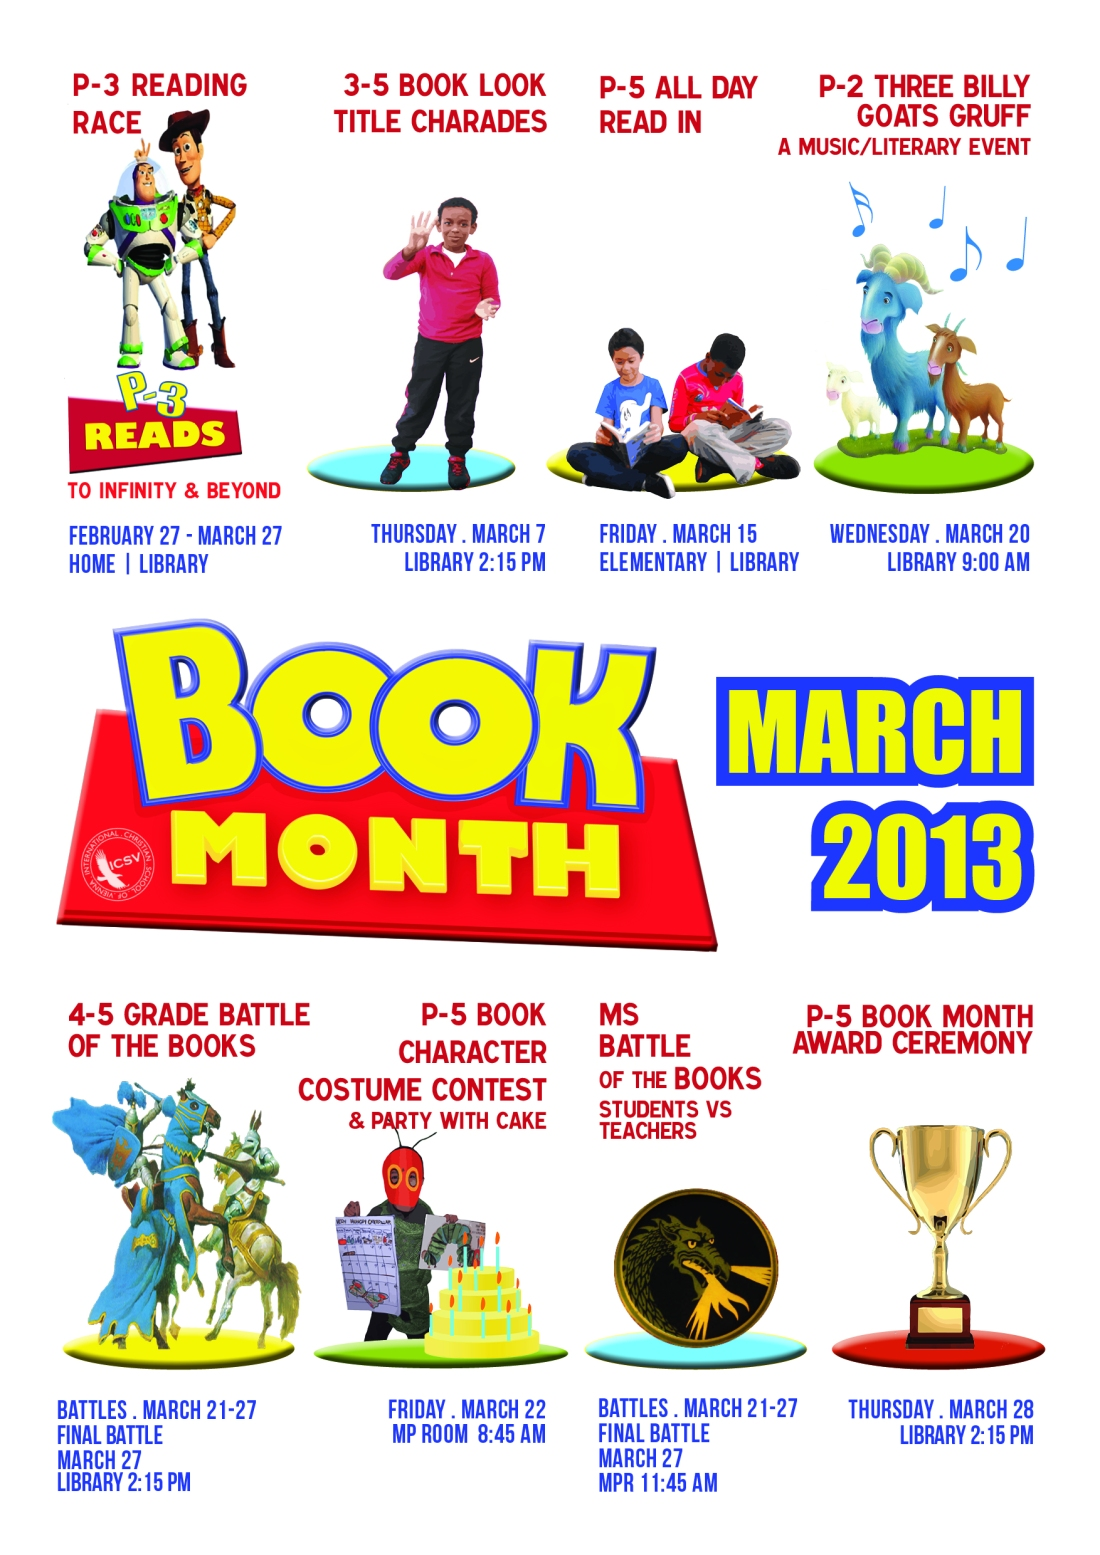 Introducing the 2013 ICSV Library Book Month Event Poster